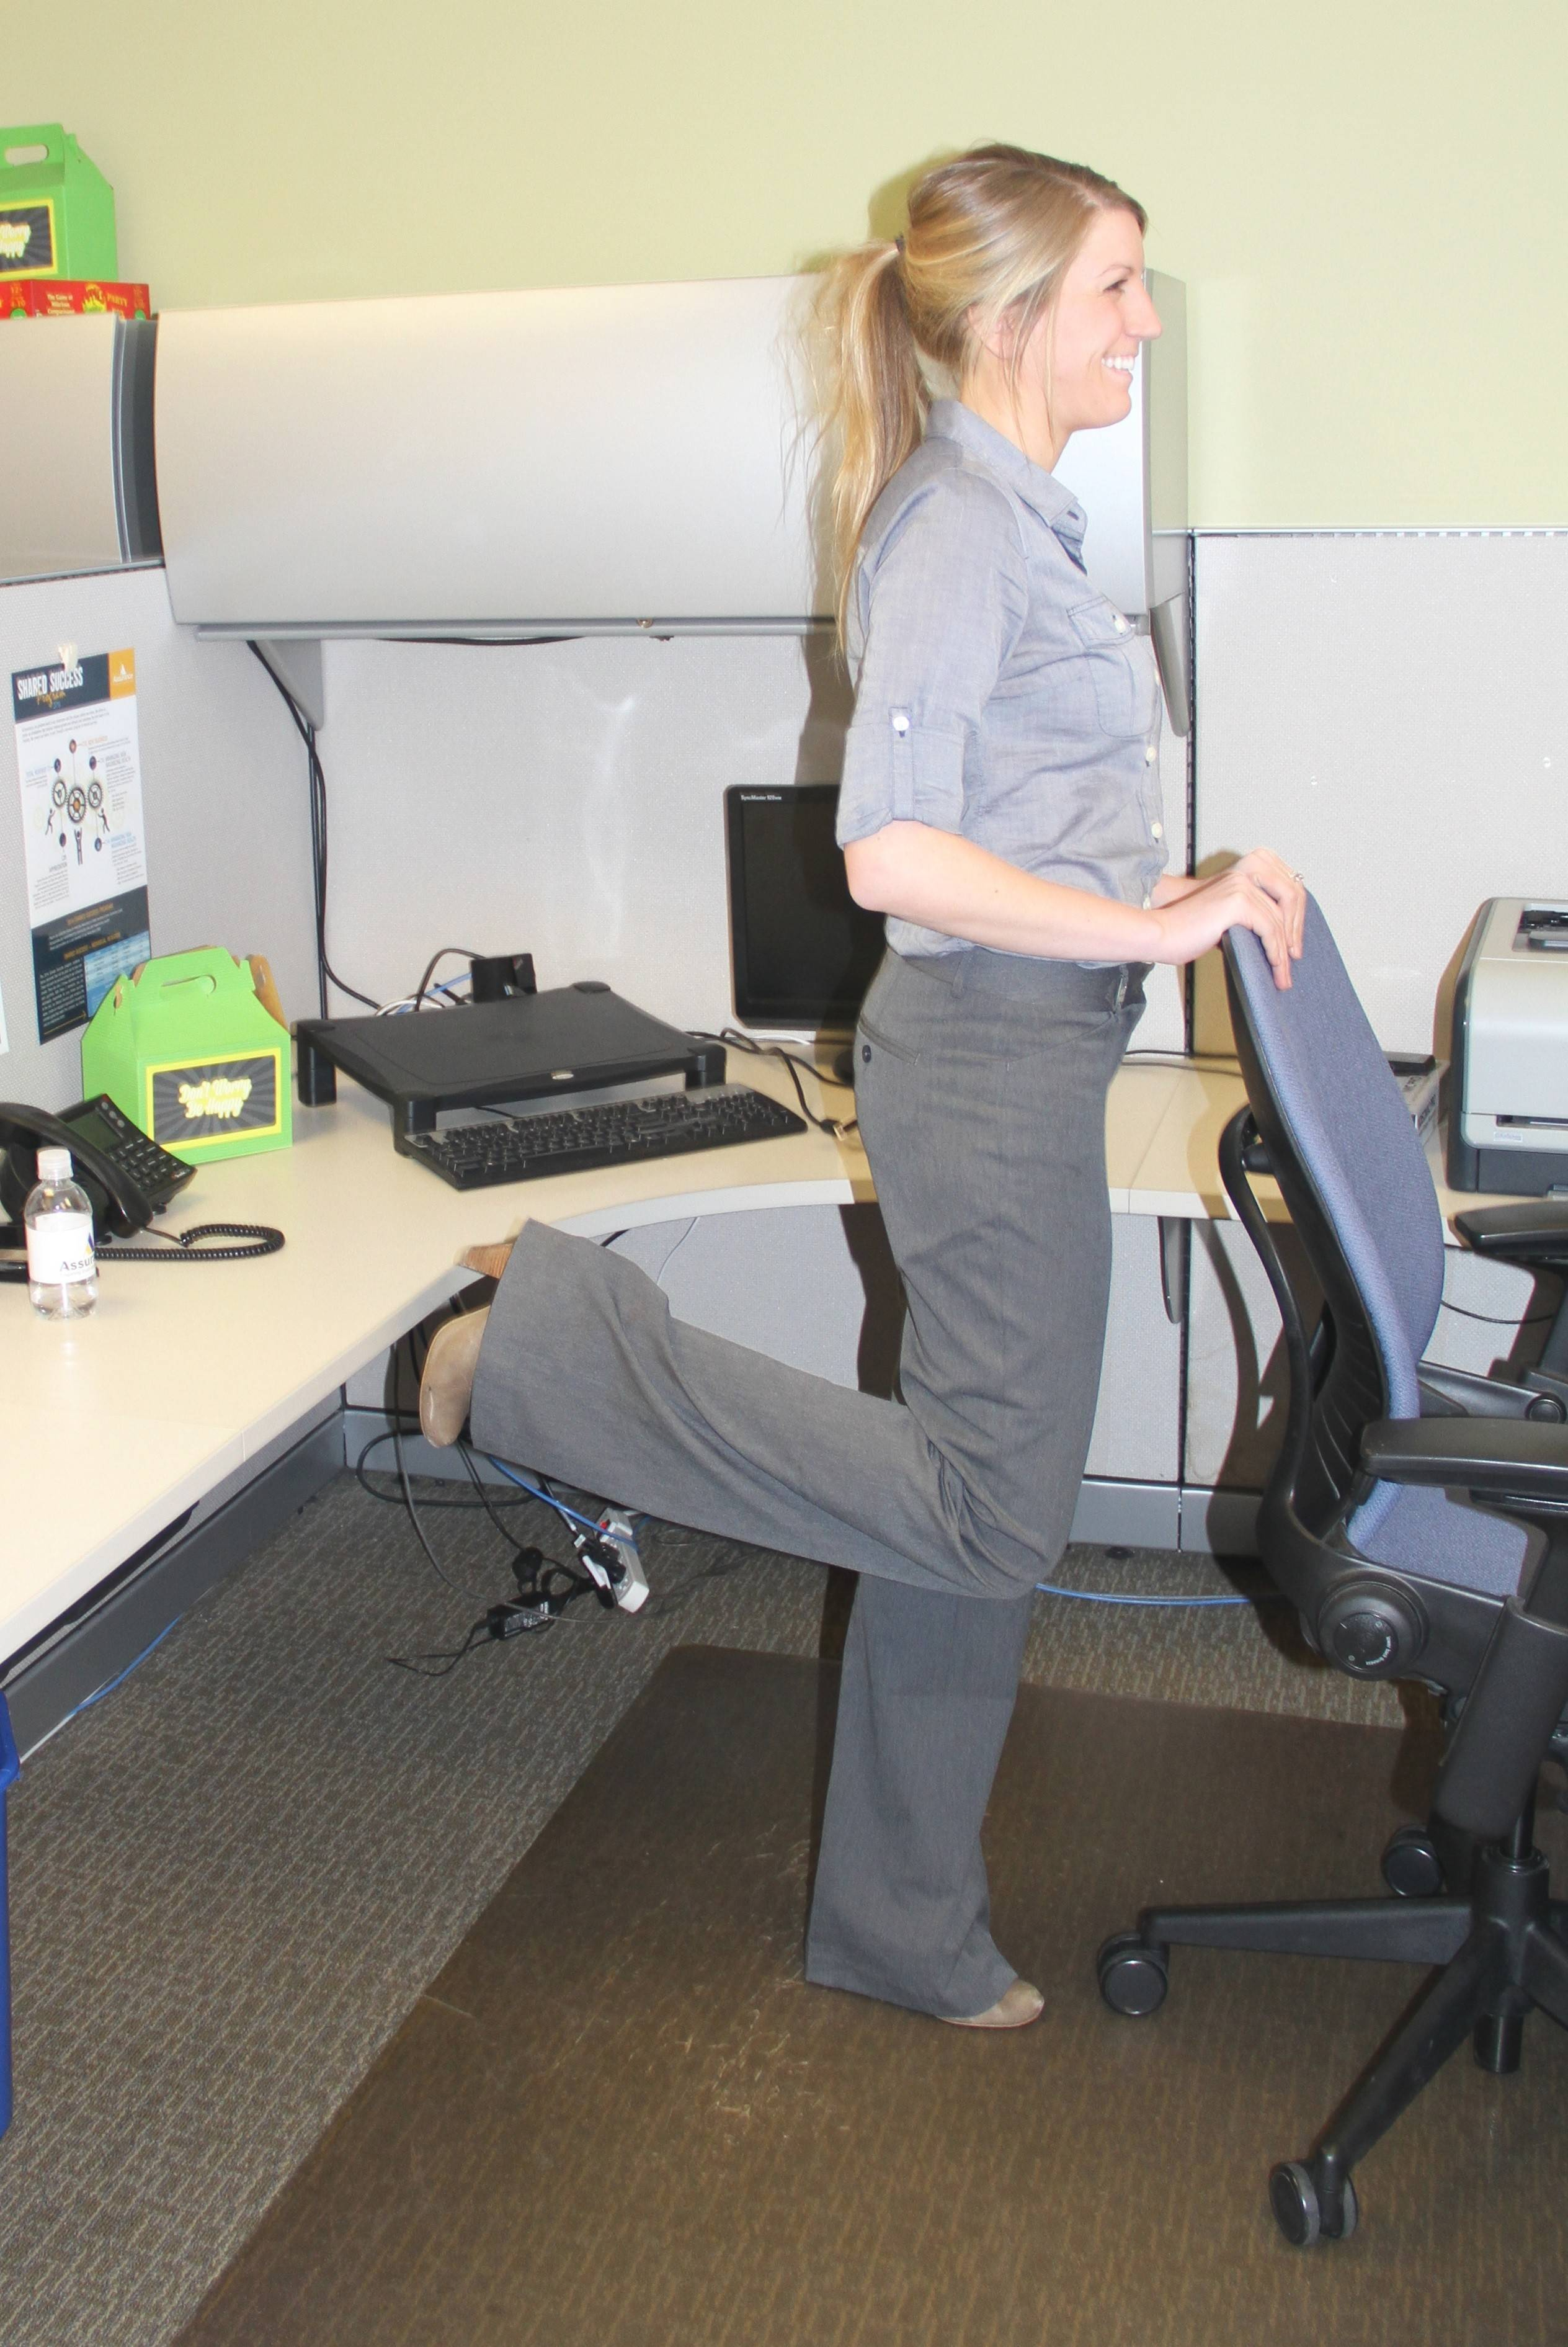 Jill Micklow, Wellness Specialist at Assurance, feels the burn as she does 10 reps of hamstring curls at her desk.